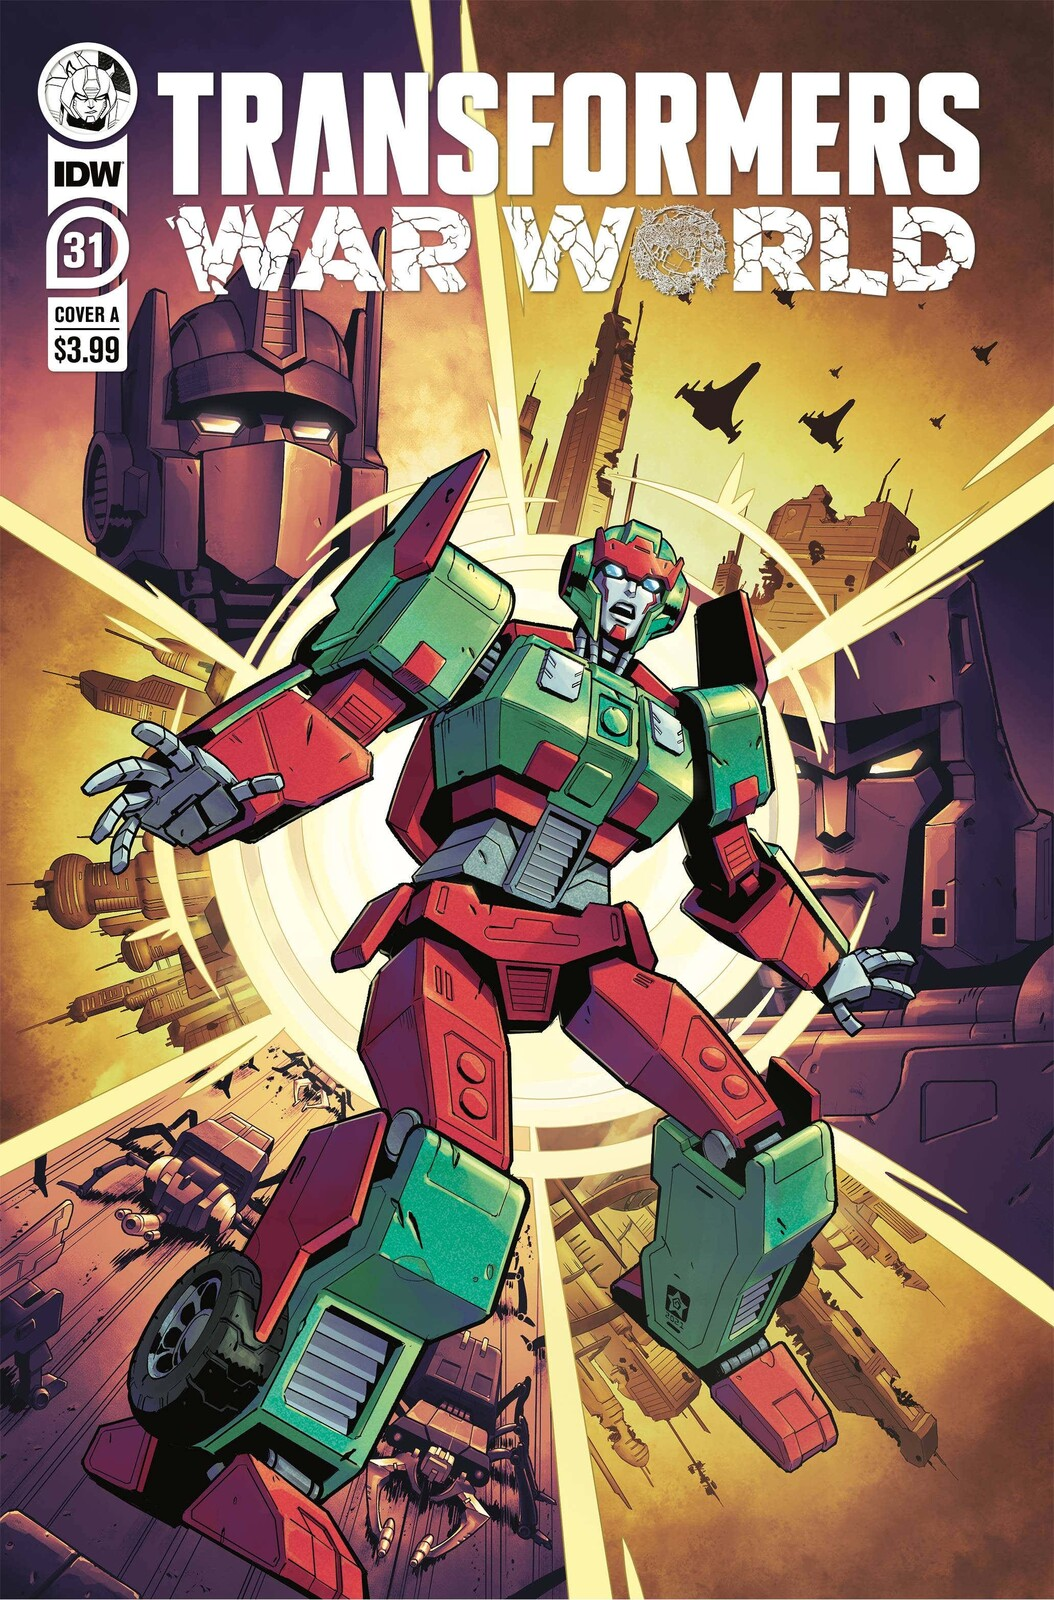 Transformers #31: Lord of Misrule Cover